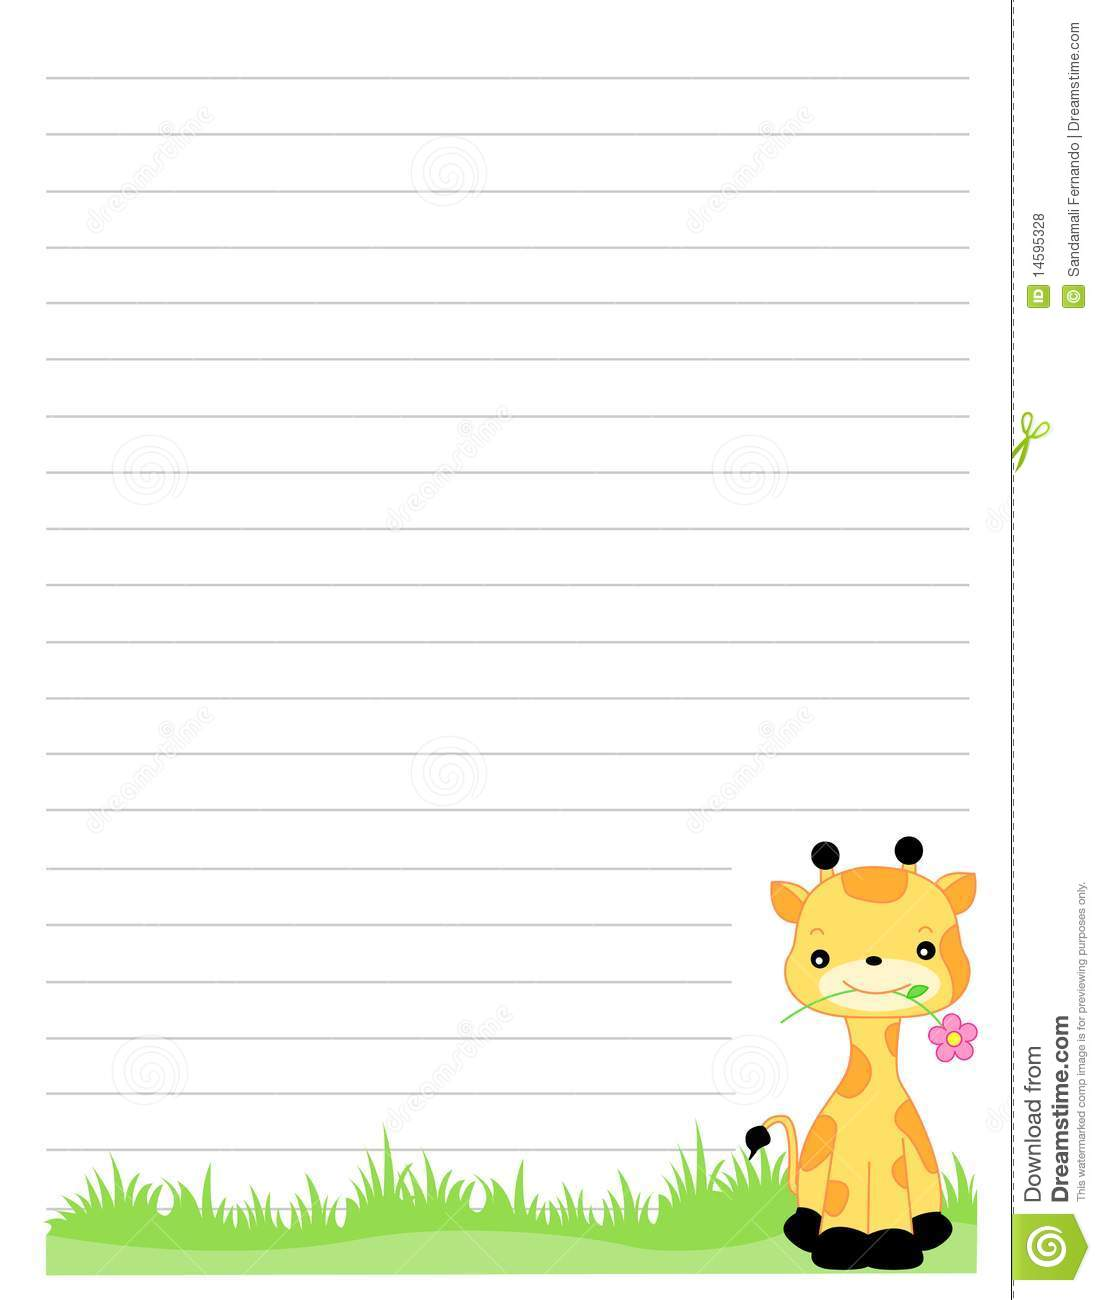 Royalty Free Stock Photos Cute Note Paper Background Image14595328 on Latest Writing A Memo